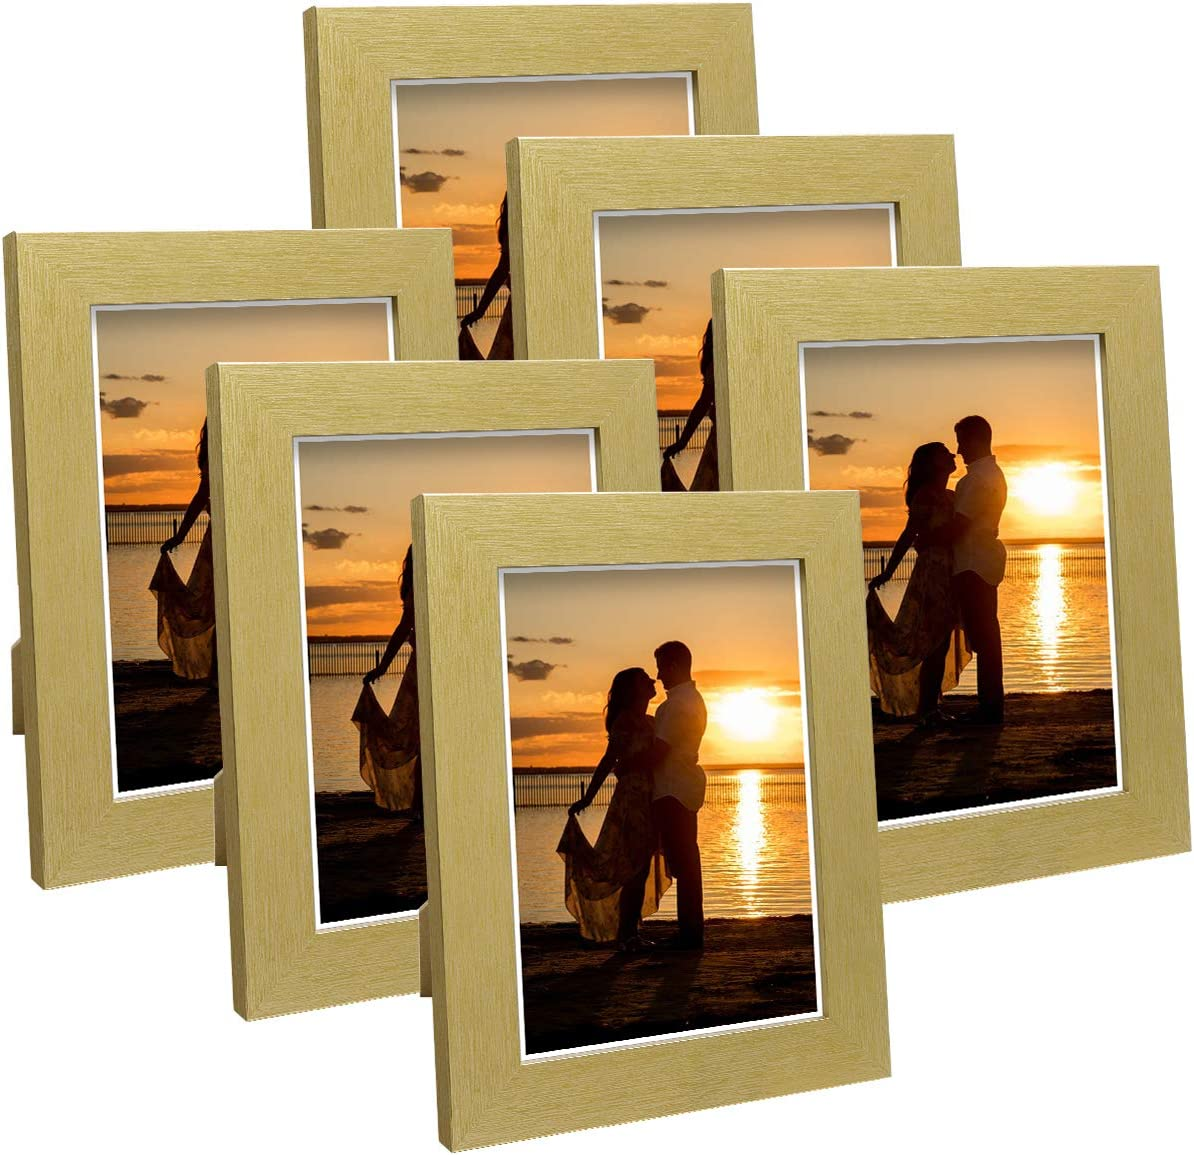 Q.Hou 5x7 Picture Frame Wood Pattern Gold Photo Frames Packs 4 with High Definition Glass for Tabletop or Wall Decor (QH-PF5X7-GD)